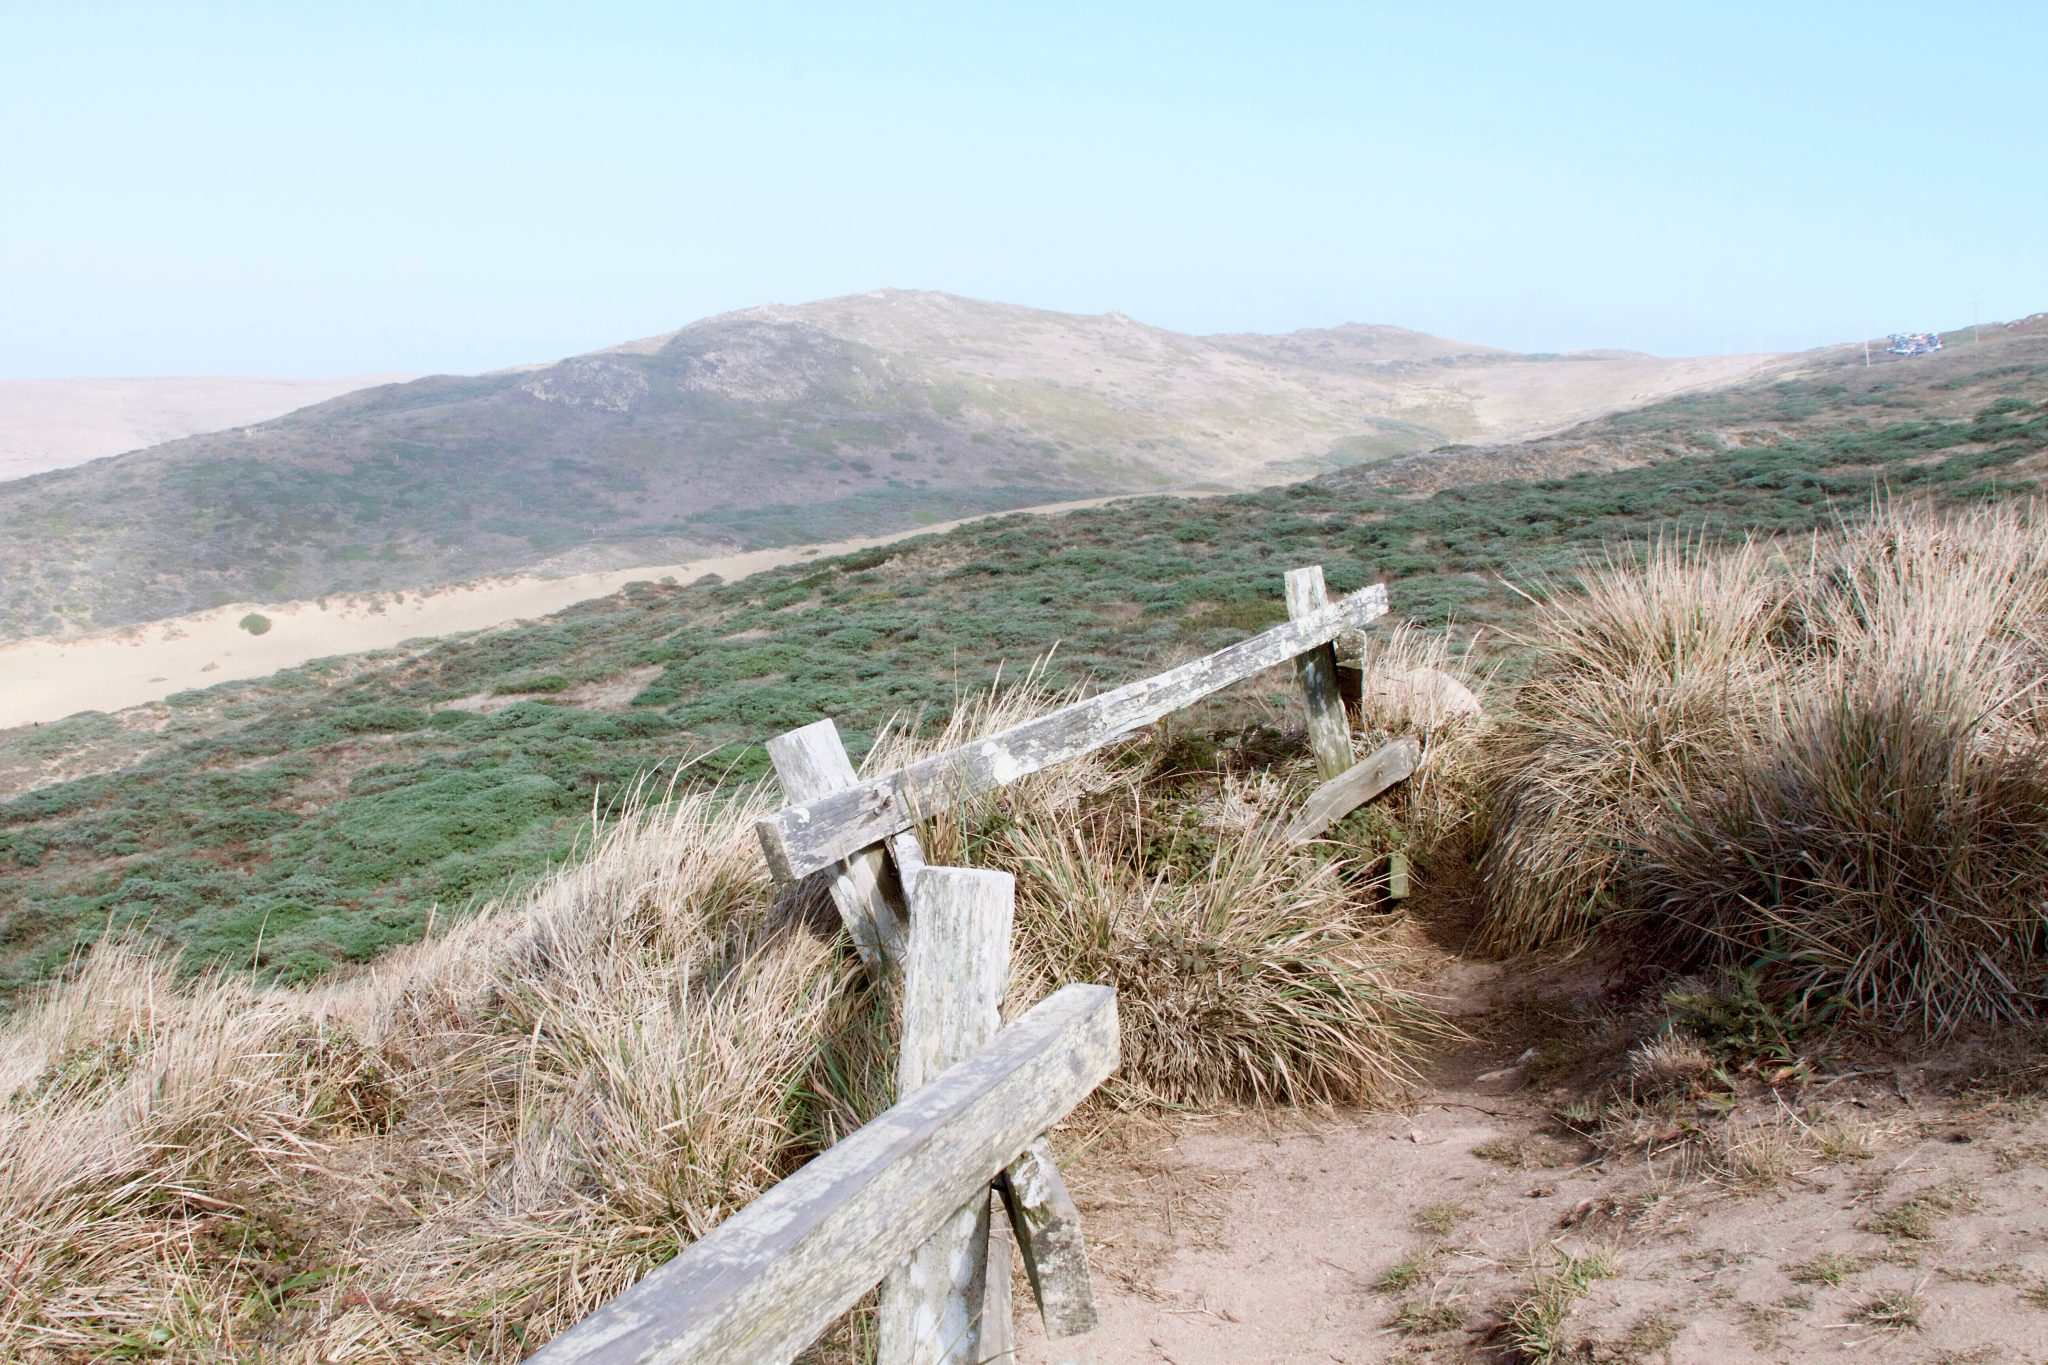 September 2016 - Point Reyes National Seashore. Photo by Jamie Balaoro